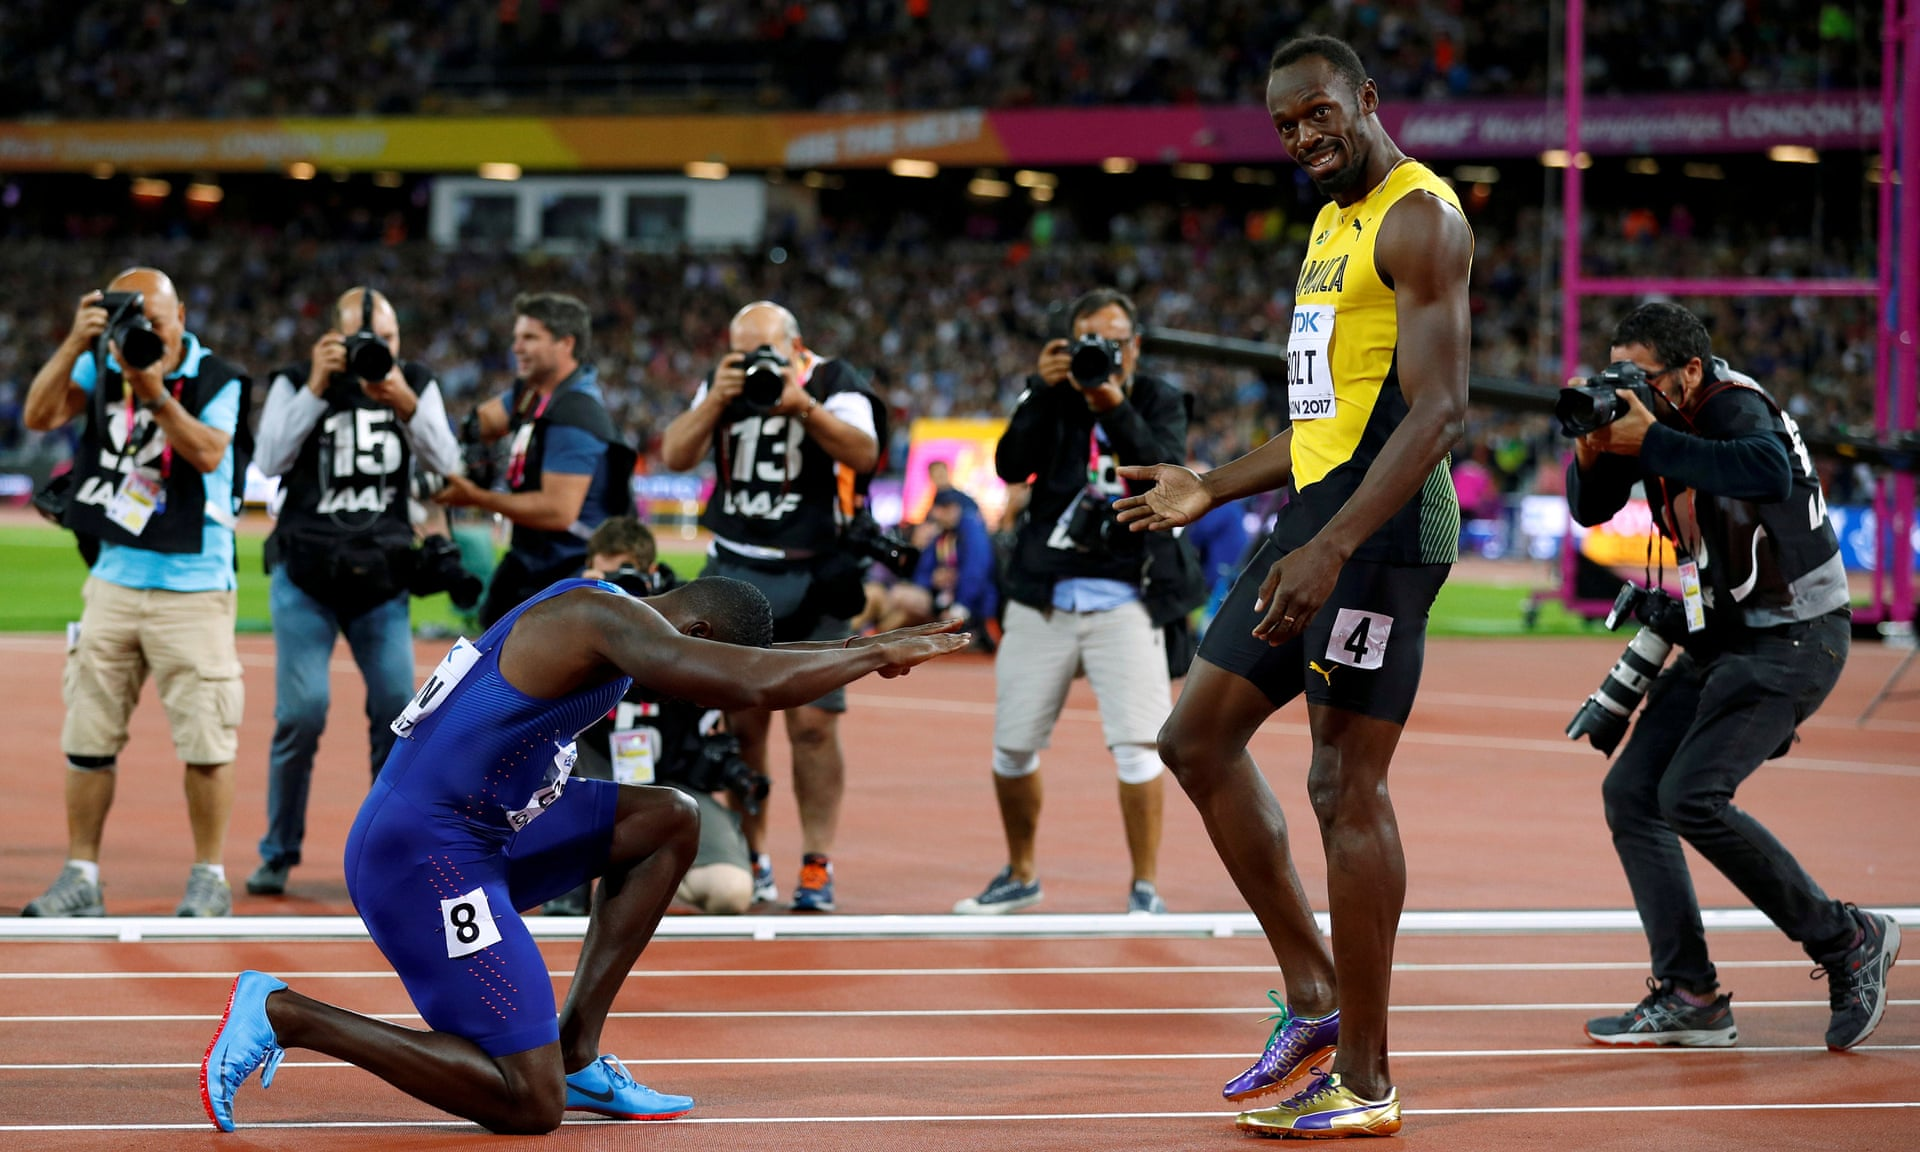 Justin Gatlin bows before Usain Bolt after beating him in the 100m final.